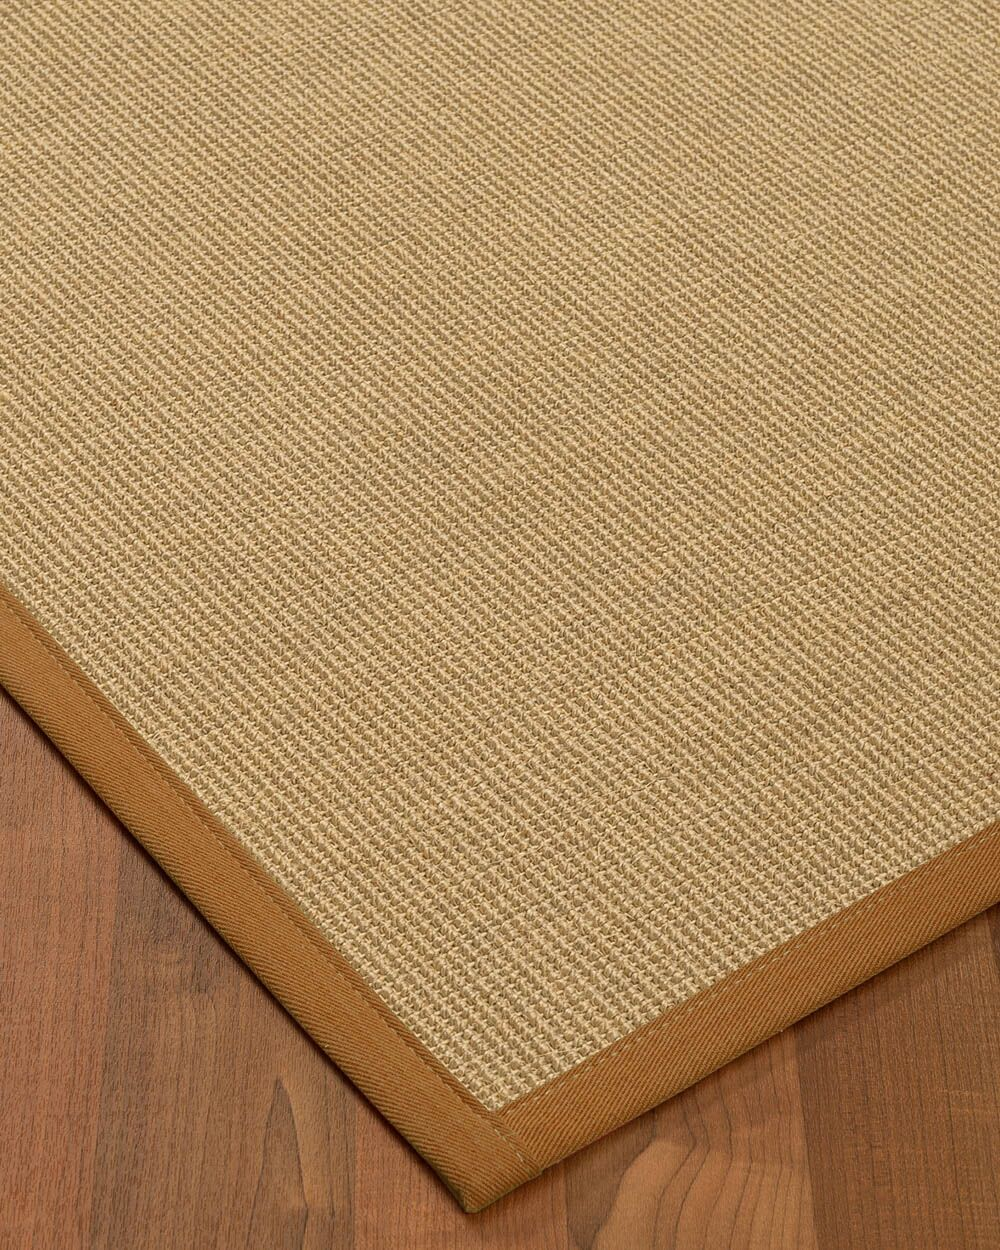 Atwell Border Hand-Woven Beige/Brown Area Rug Rug Size: Rectangle 12' x 15', Rug Pad Included: Yes